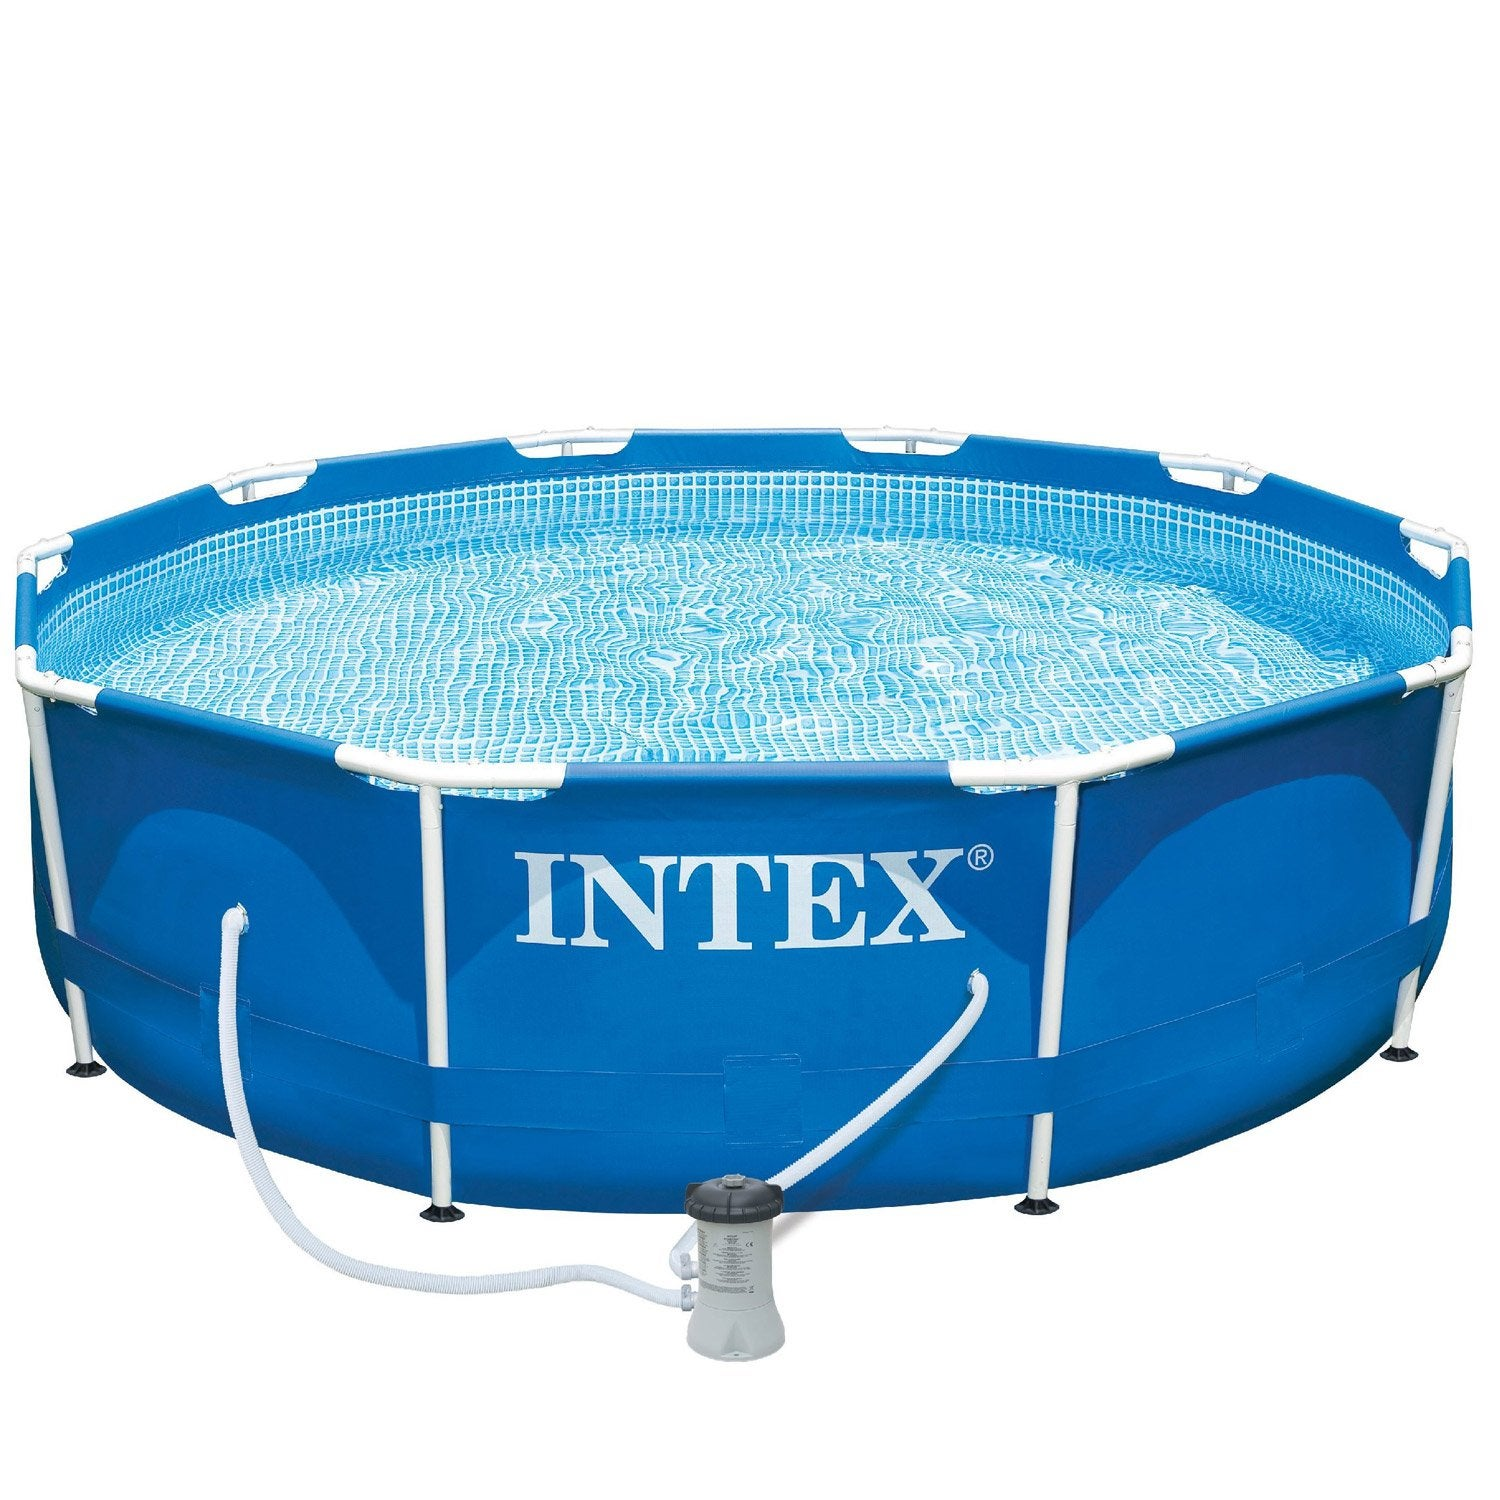 Piscine hors sol autoportante tubulaire metal frame intex for Piscine hors sol albi